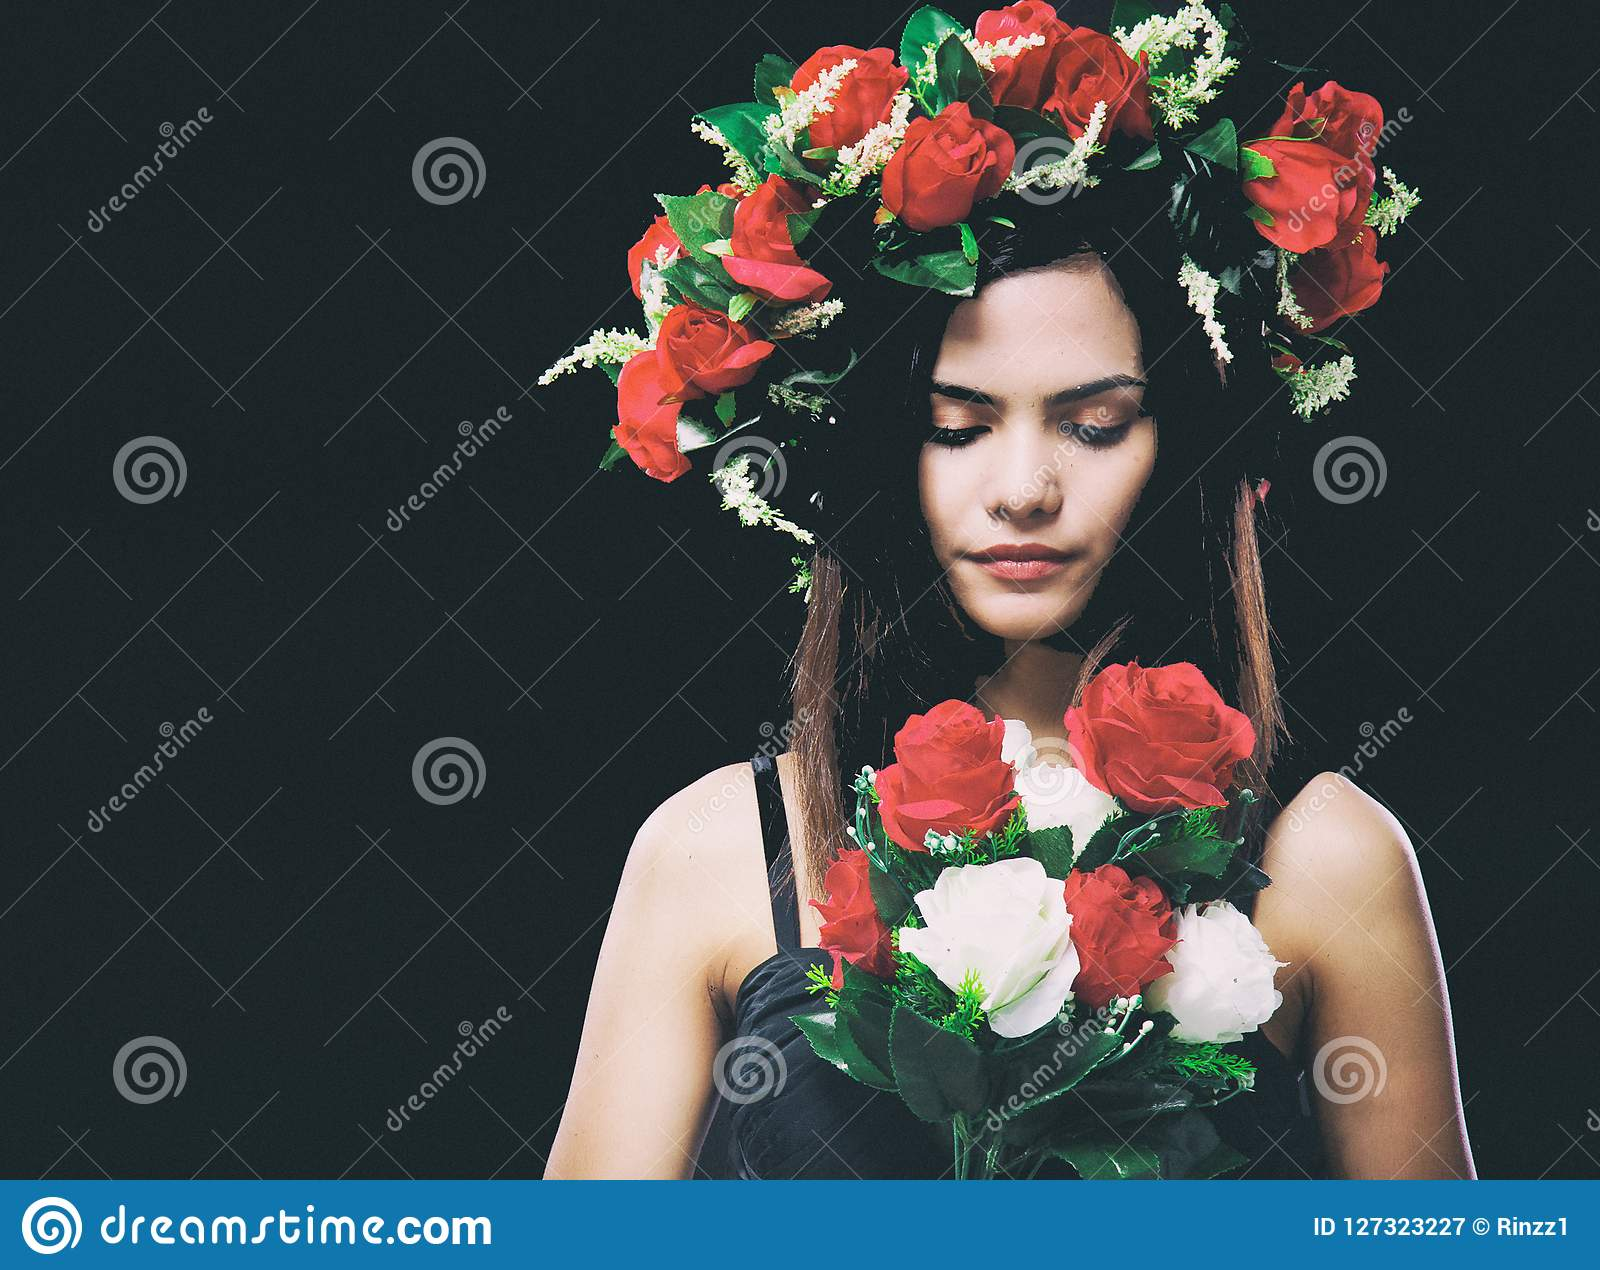 The abstract art design background of beauty lady is wearing rose crown,looking rose bouquet in hands,vintage and art tone